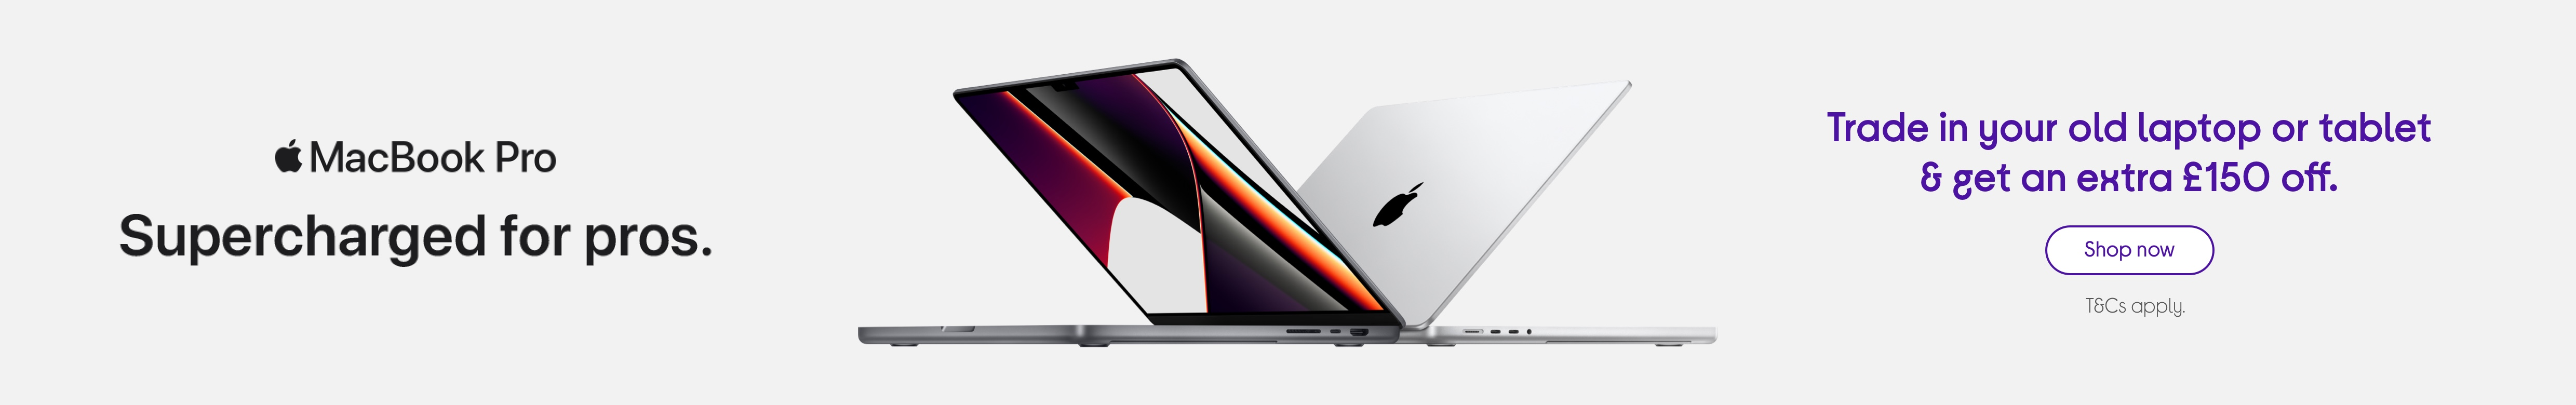 MacBook Pro. Trade in your old laptop or tablet & get an extra £150 off.